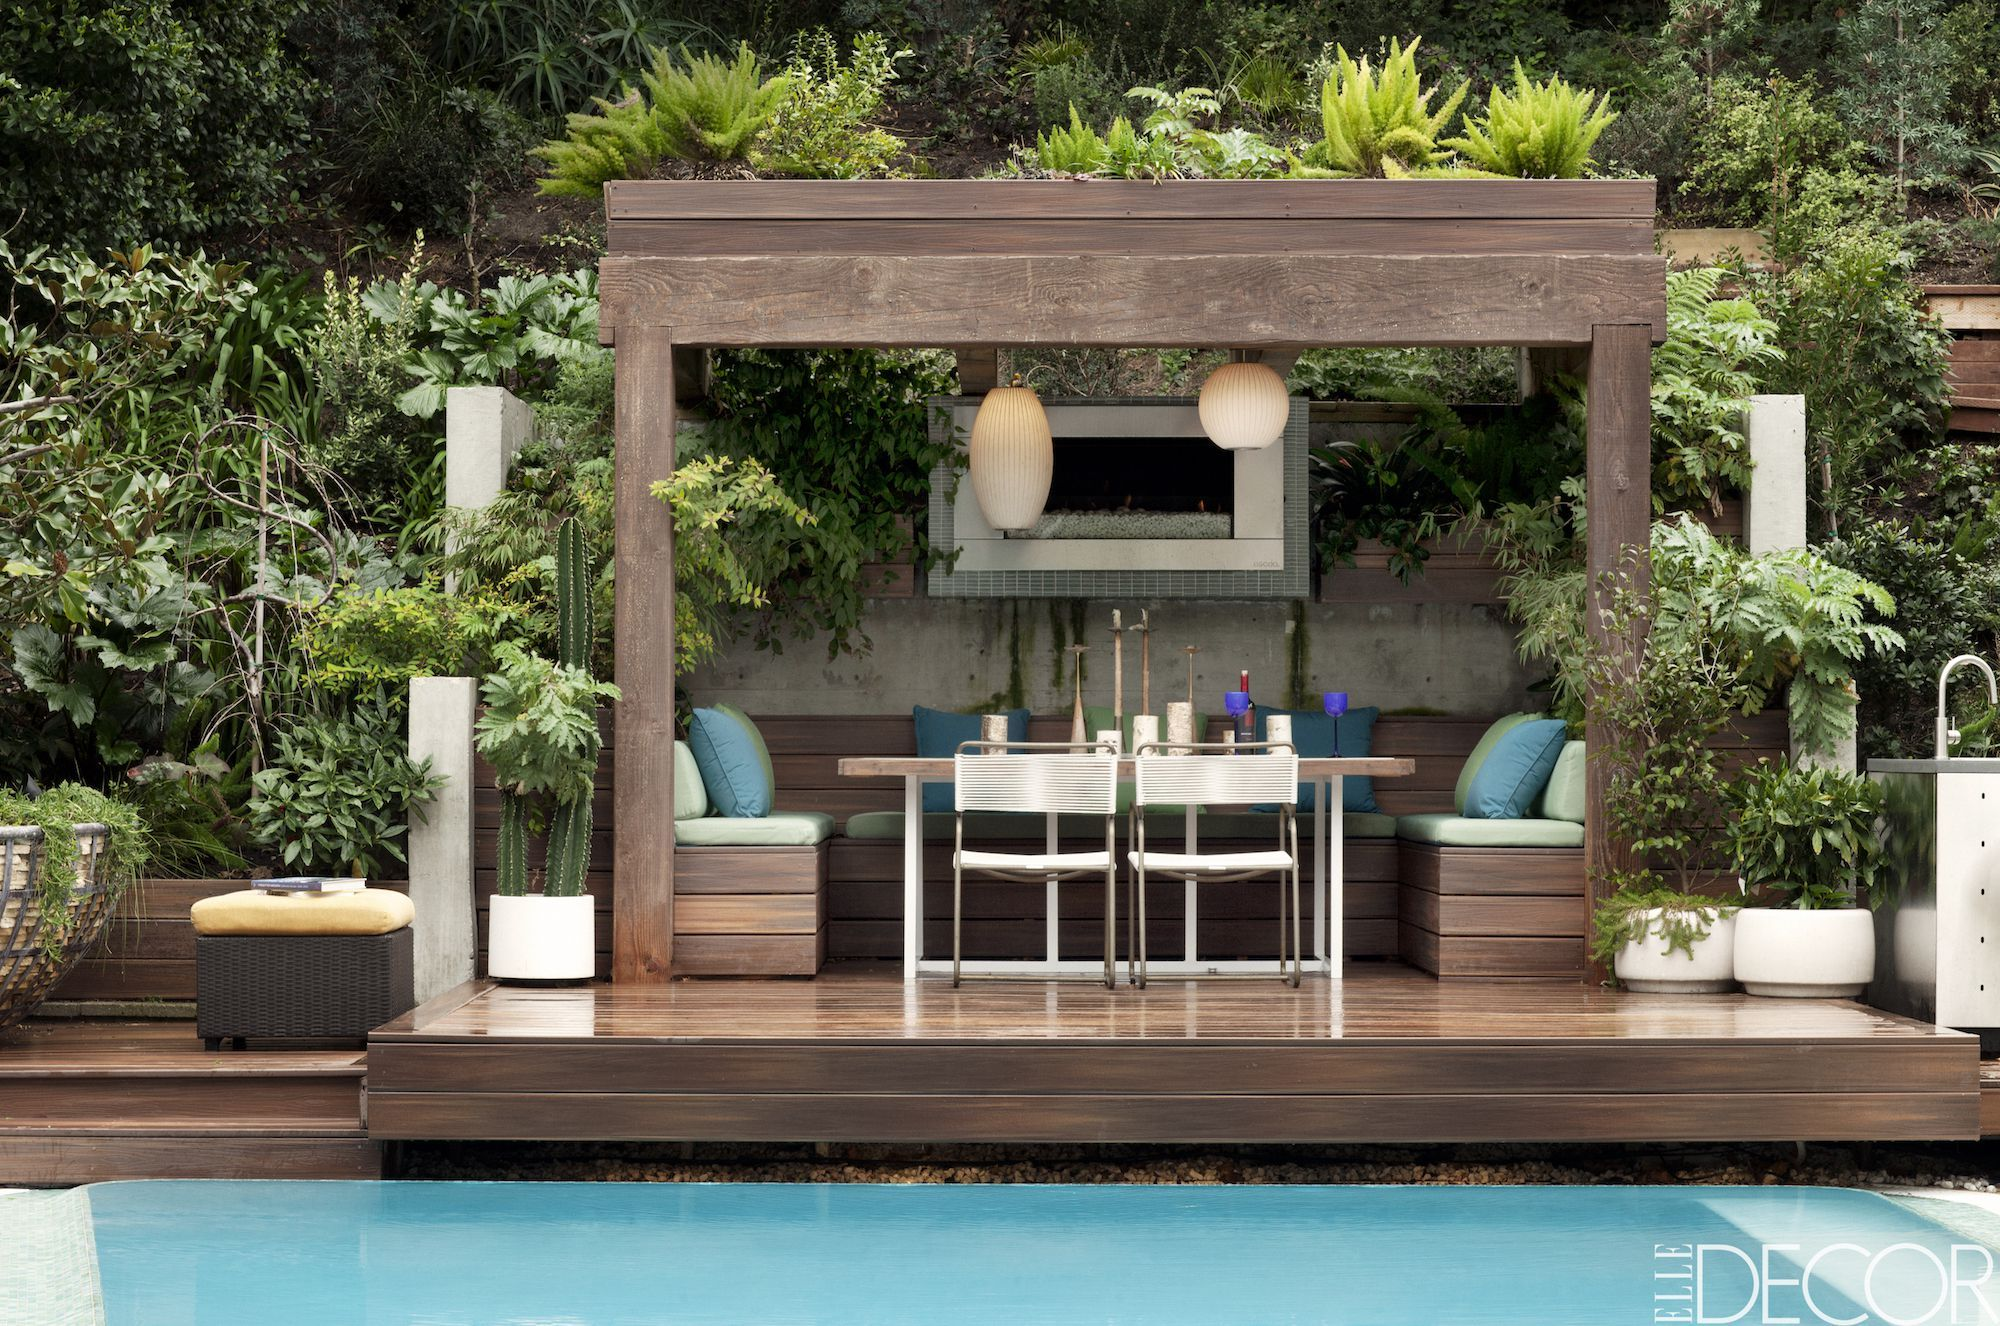 Fullsize Of Backyard Ideas Patio